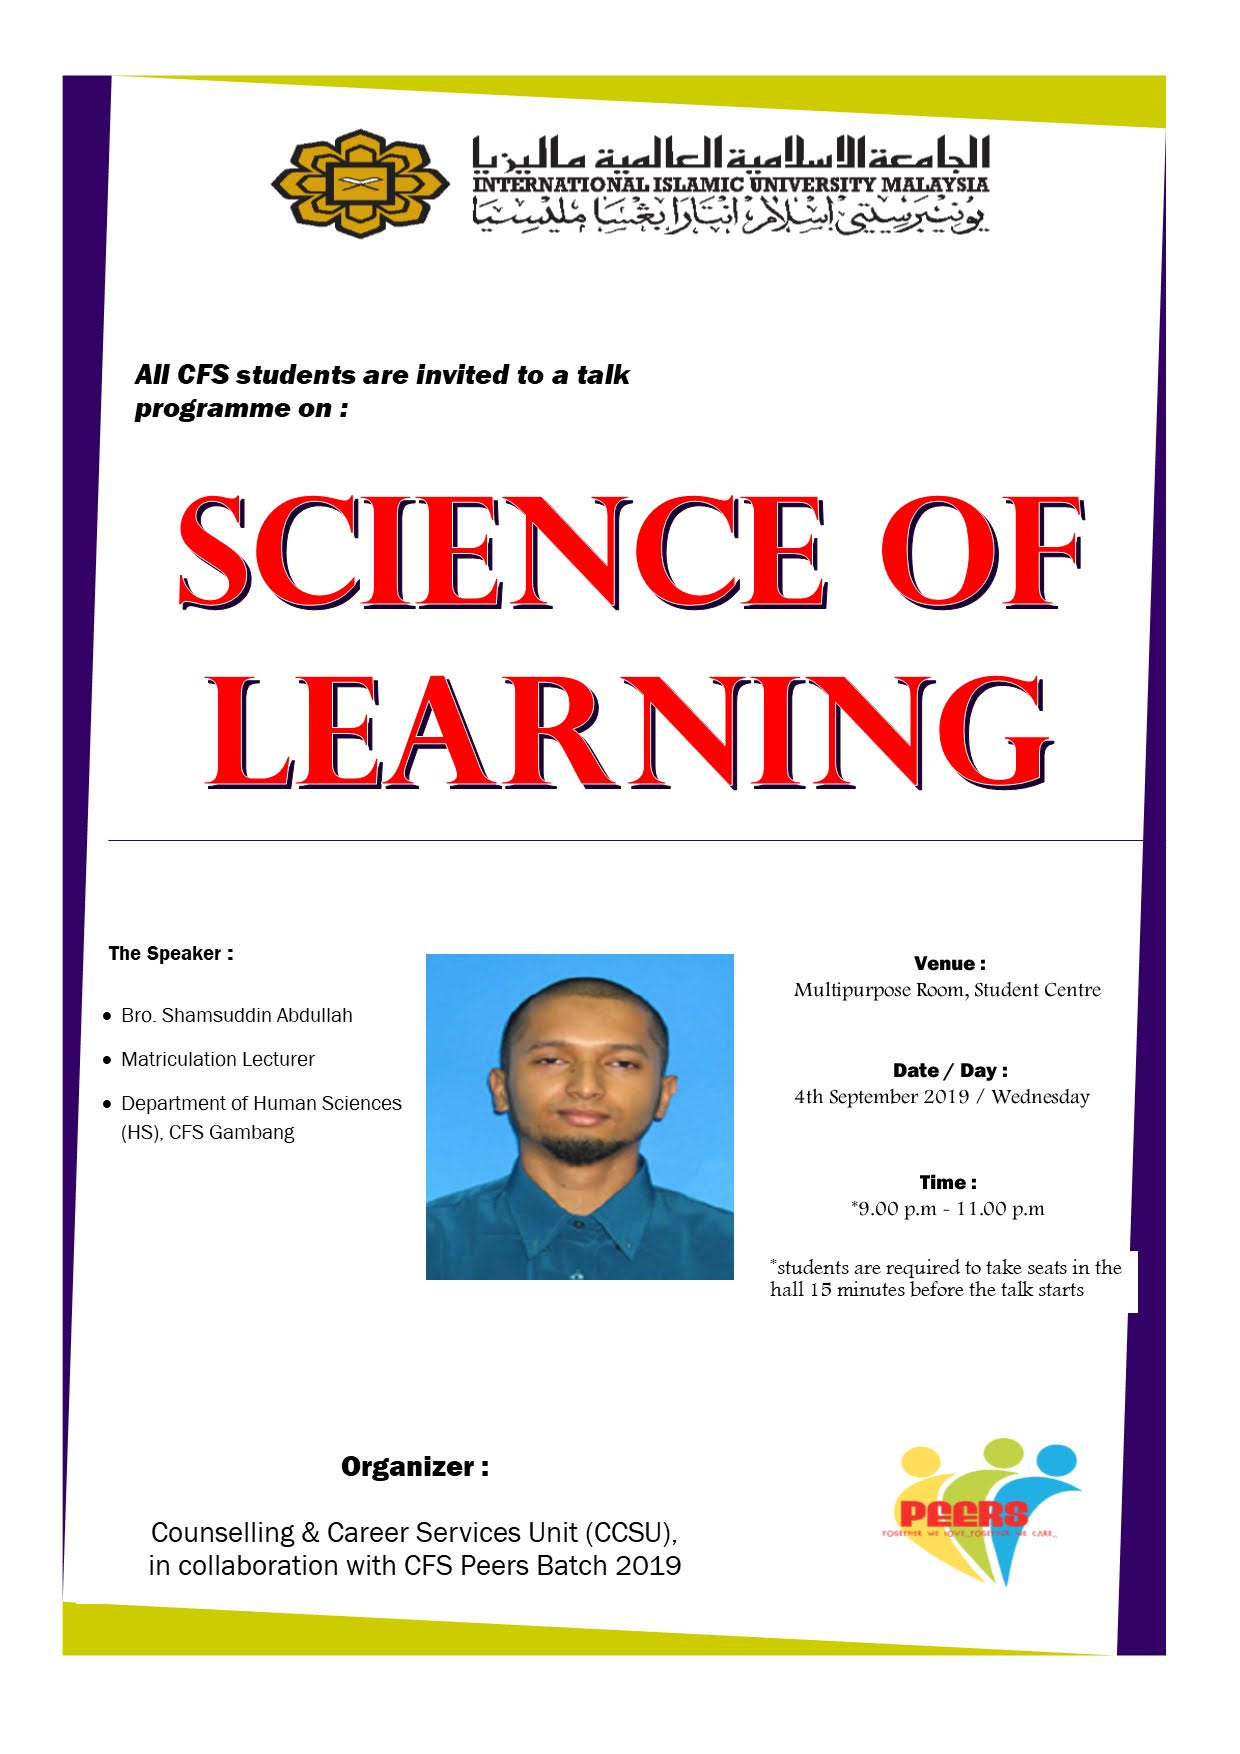 Talk Programme on Science of Learning